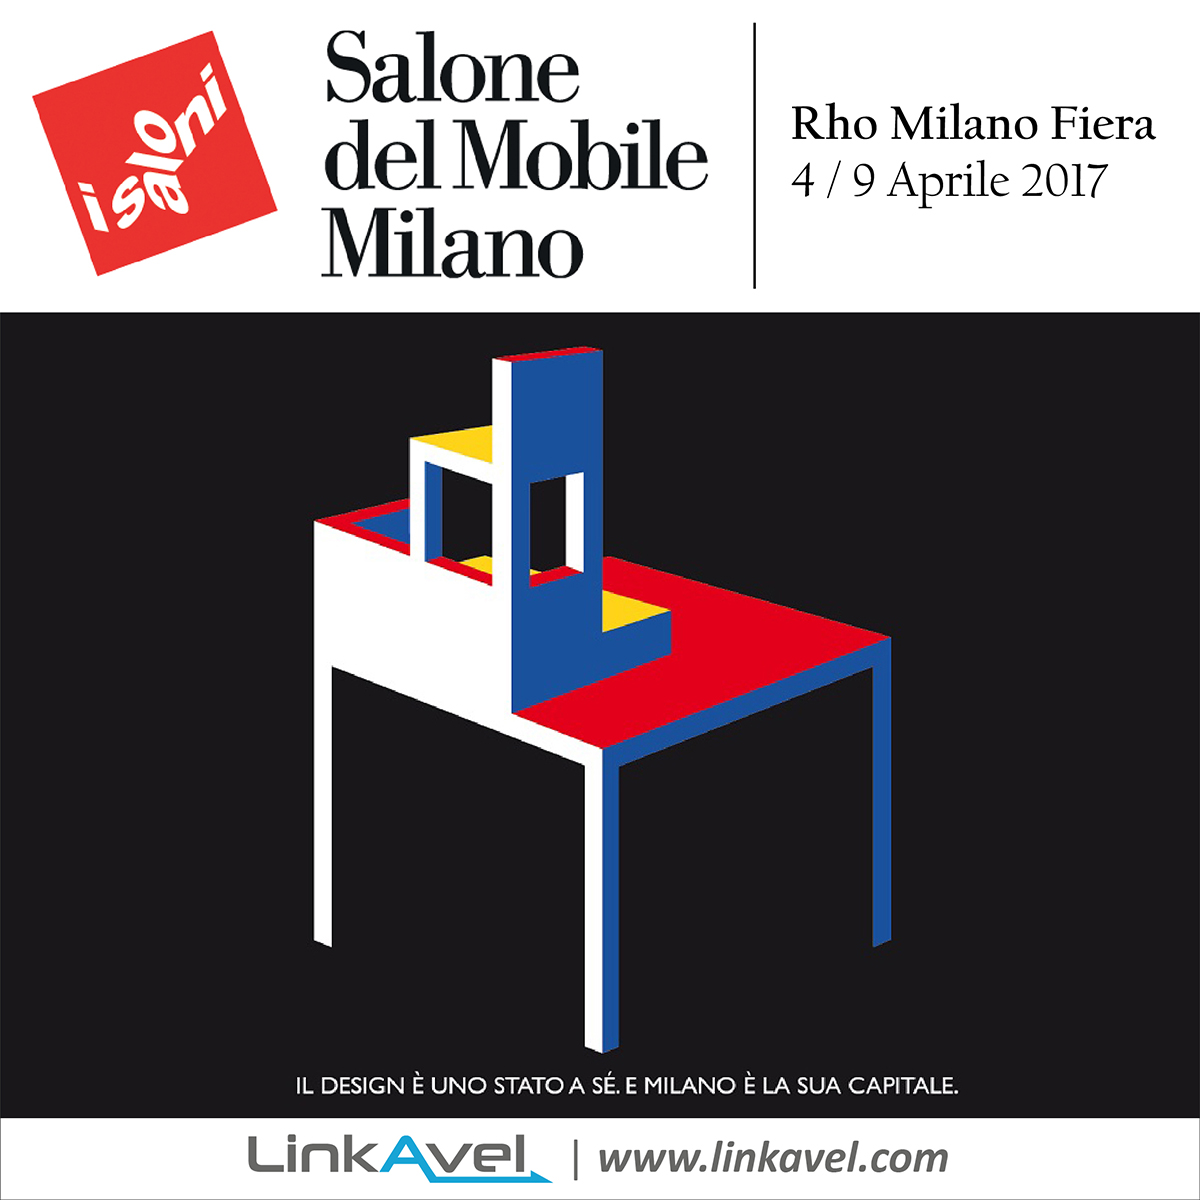 Salone del mobile milano 4 9 aprile 2017 linkavel for Fiera mobile milano 2016